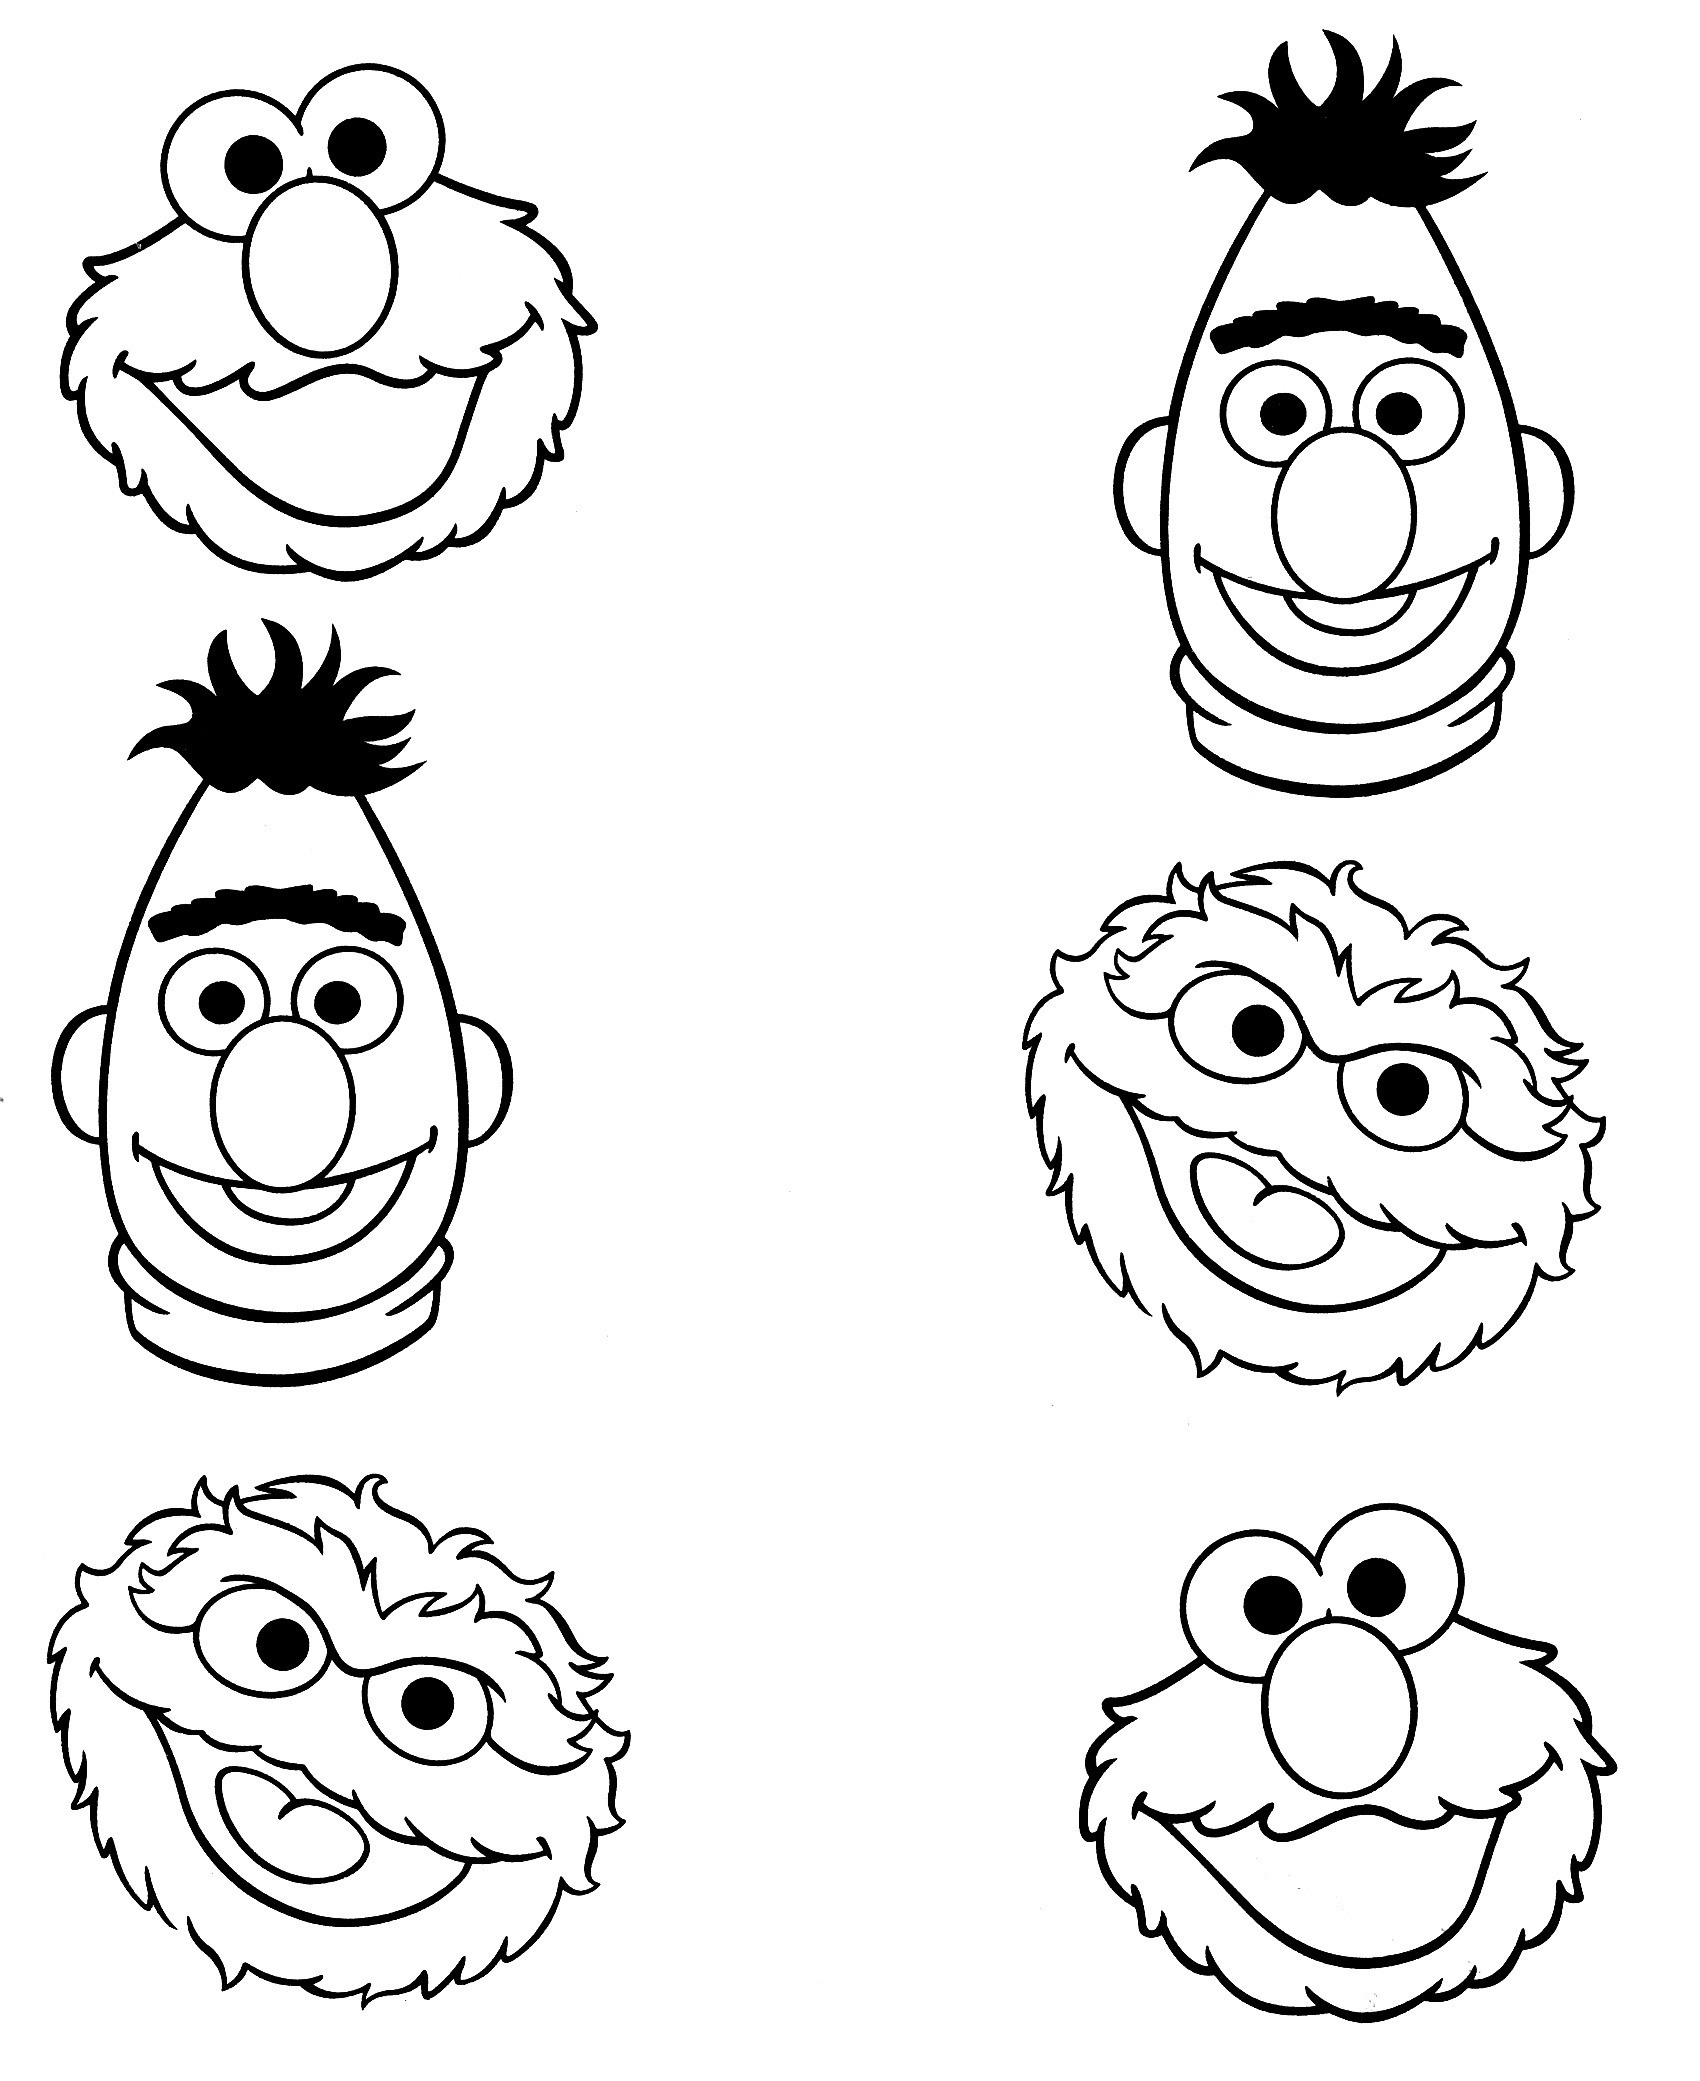 sesame street character face coloring pages